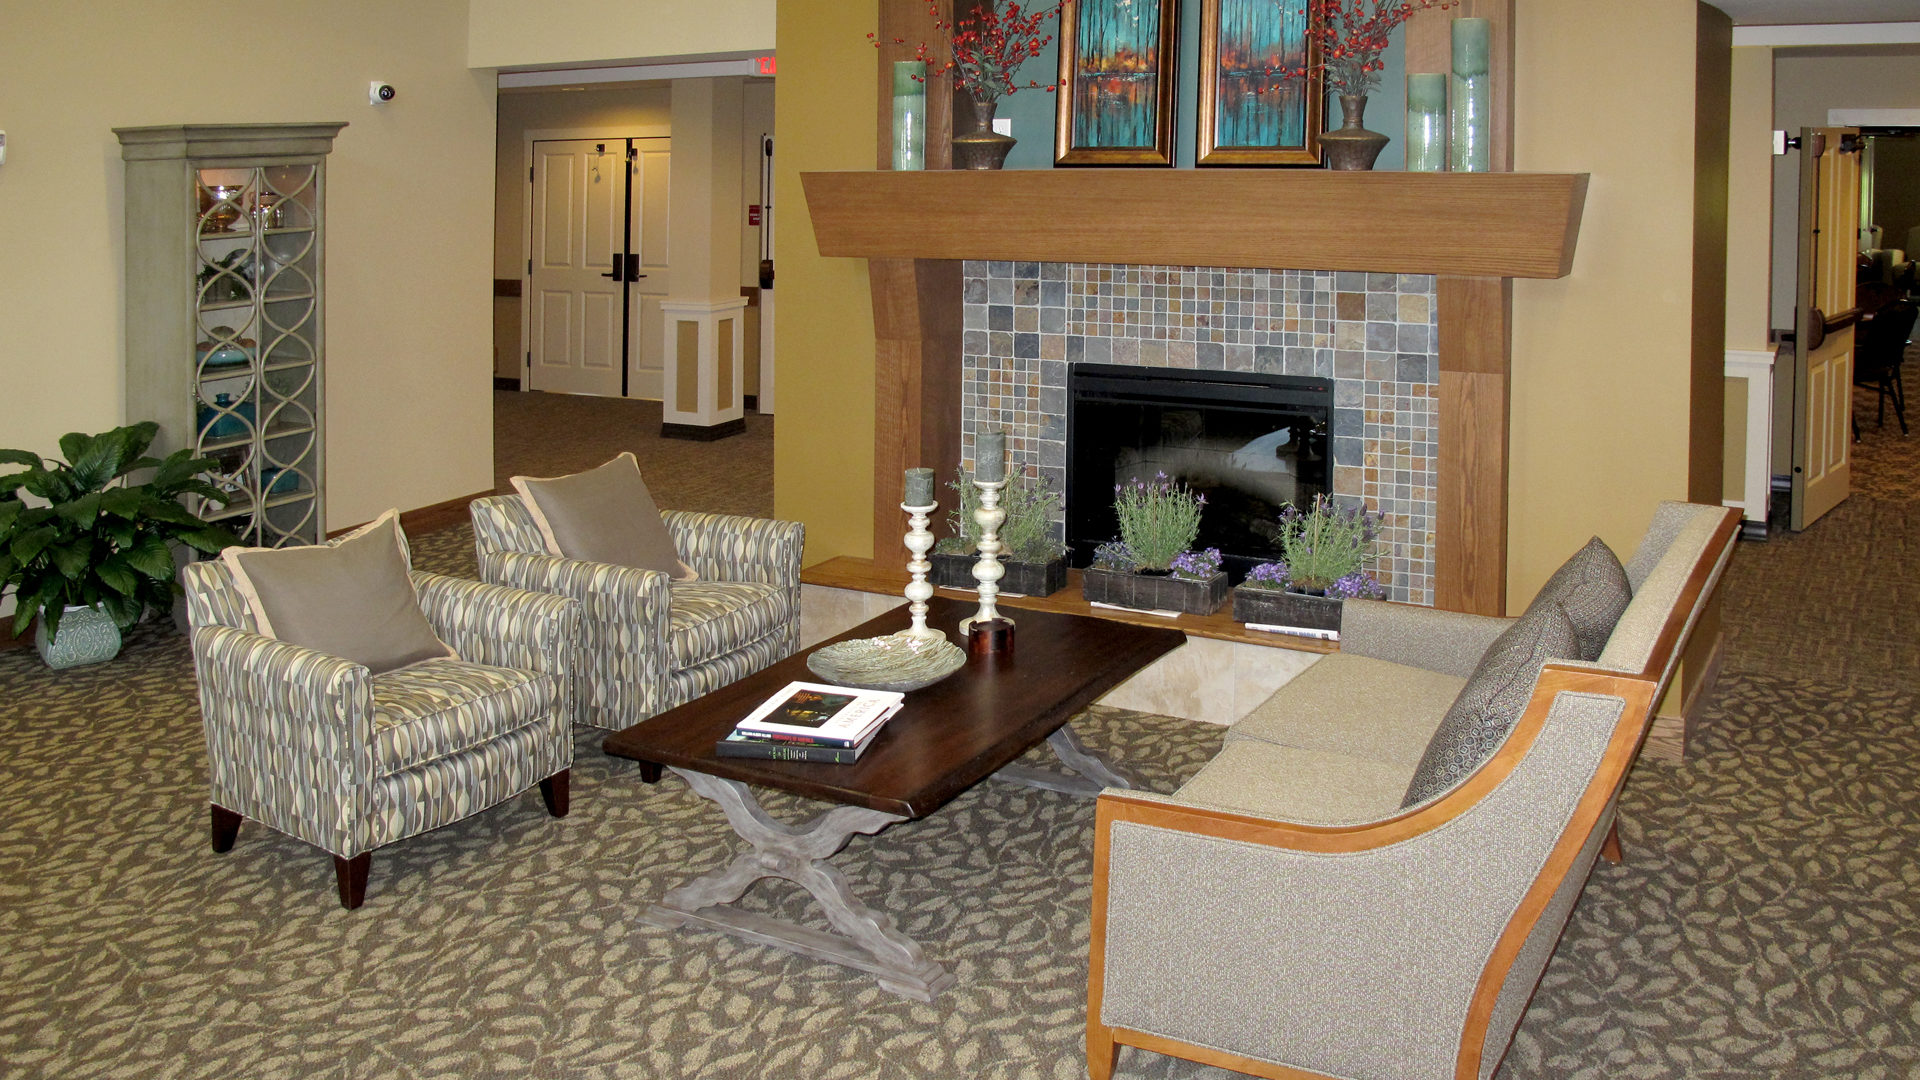 Ebenezer Arbors at Ridges Senior Assisted Living Interior Lobby Fireplace